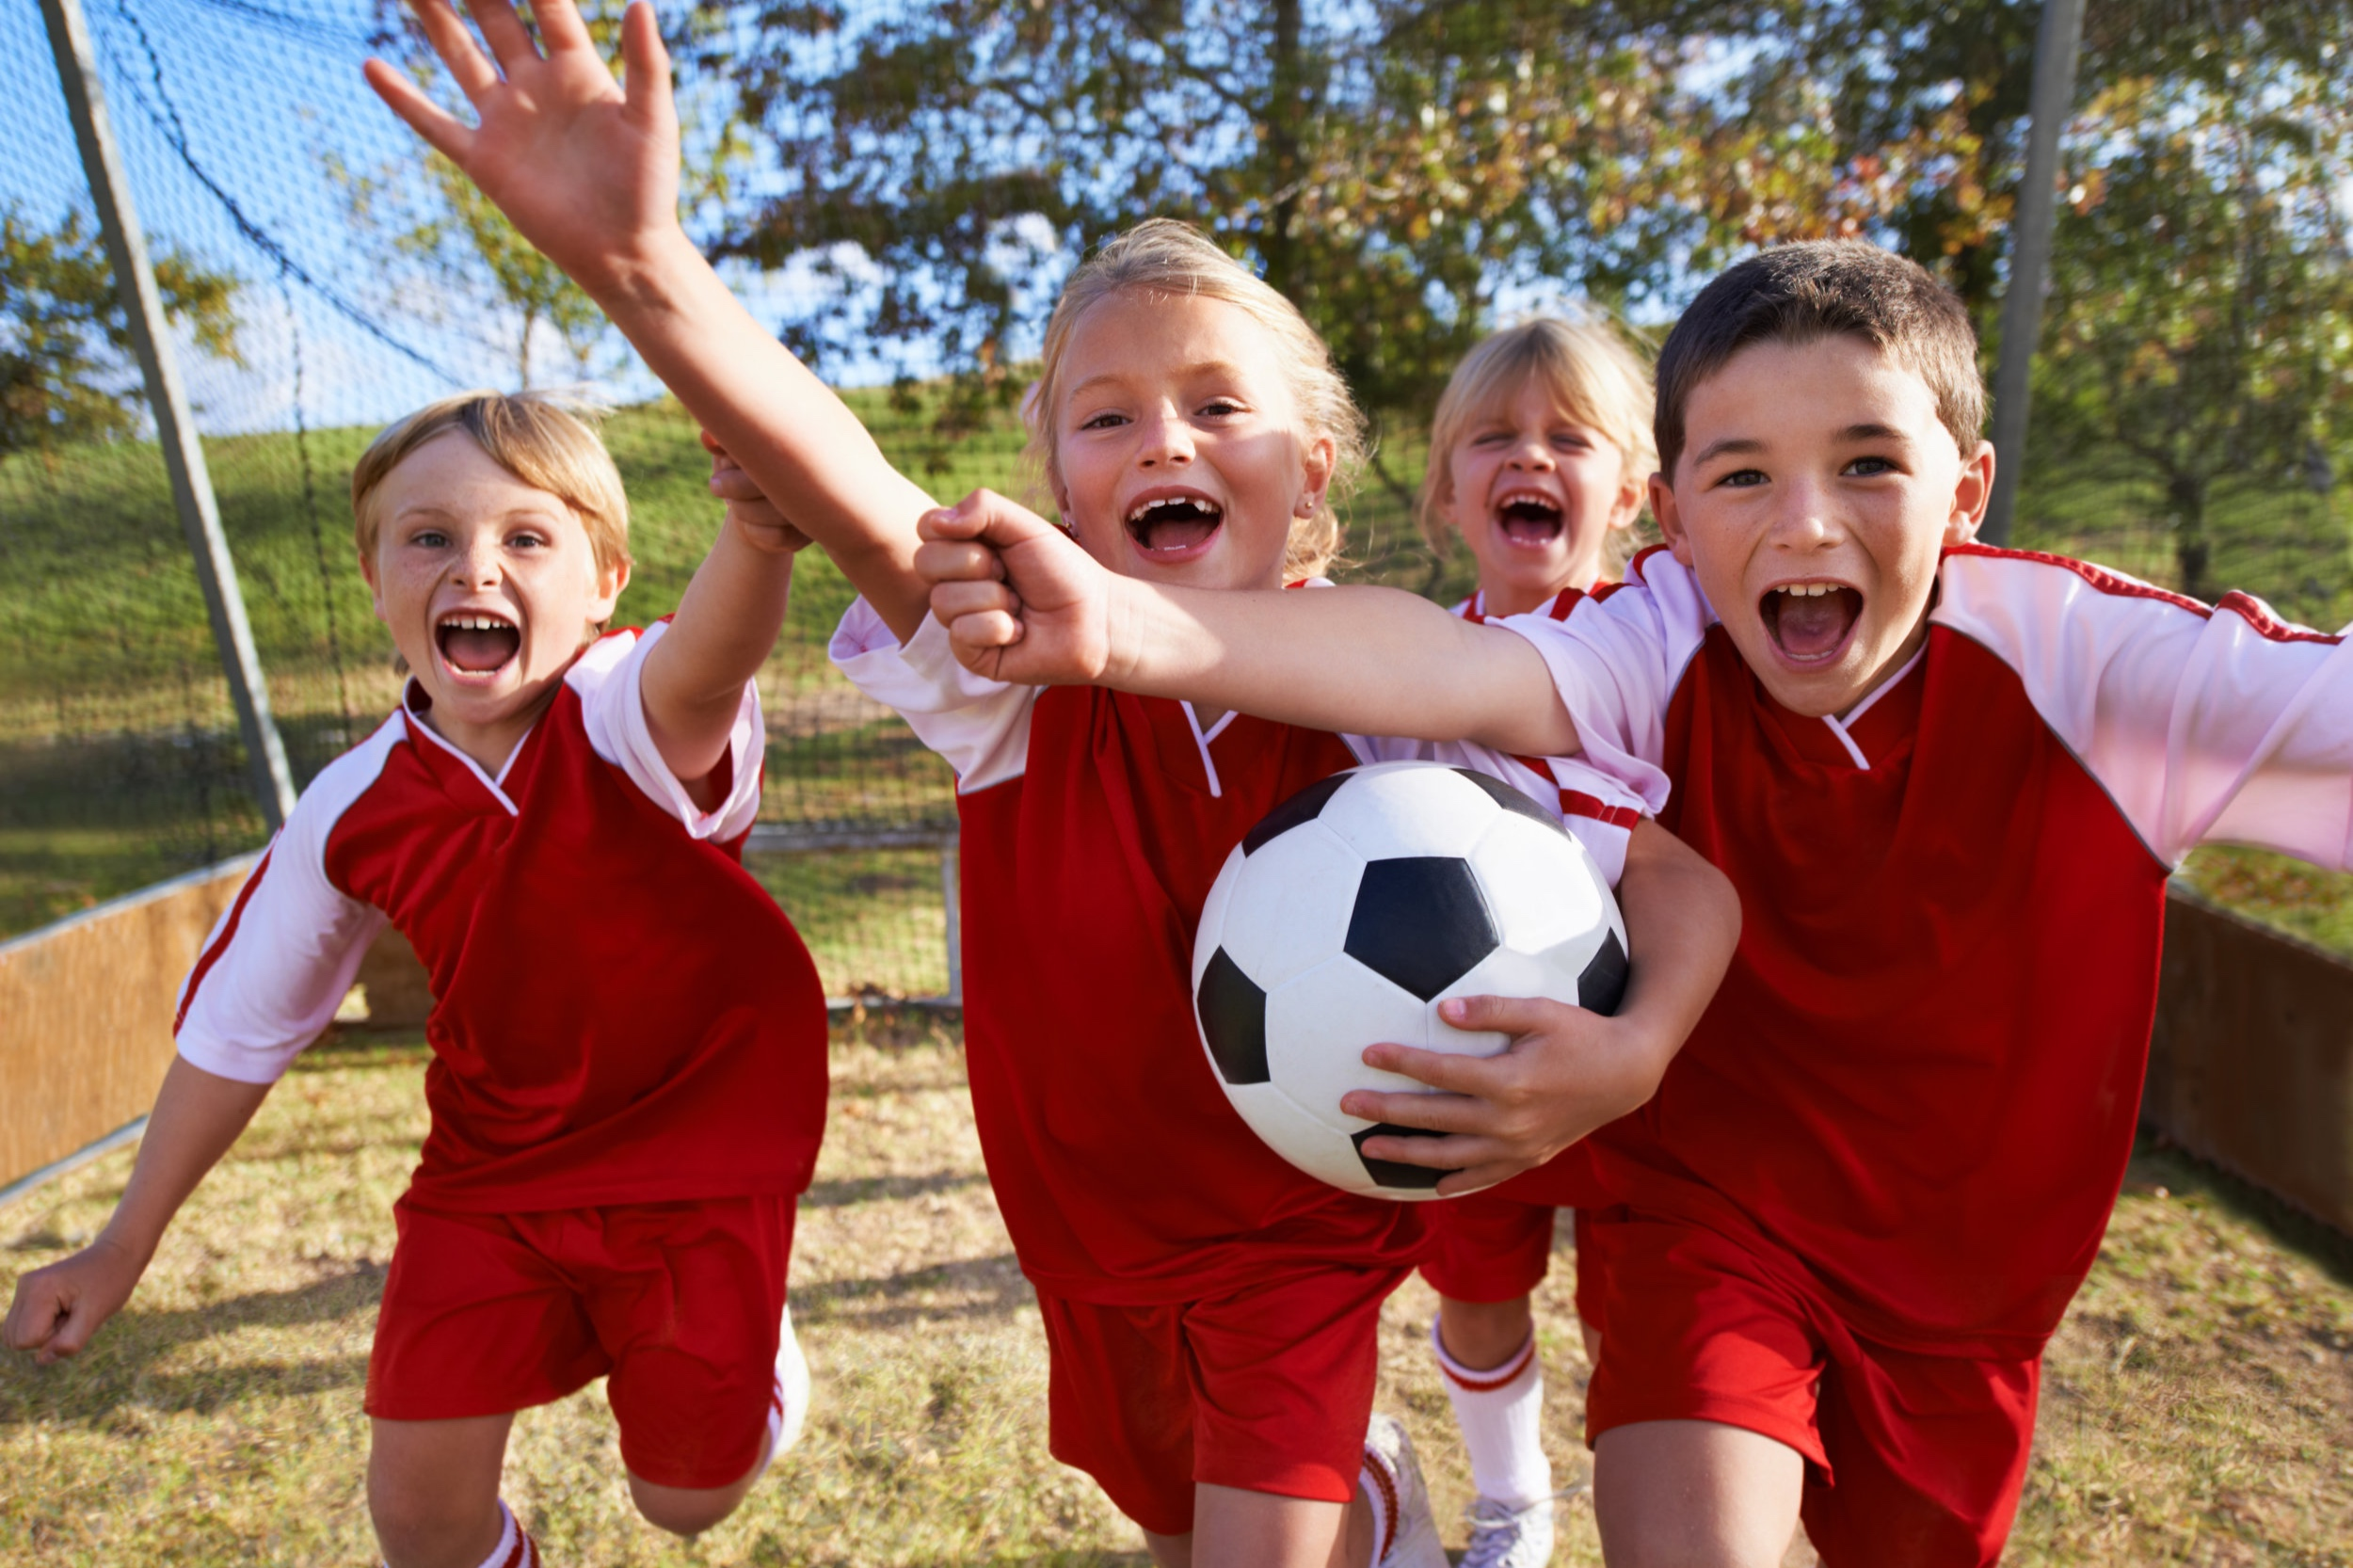 5 - 6 Years - Fun activities and fundamentals training that refine the skills from earlier sessions and introduces new ones. Learning sportsmanship and teamwork.